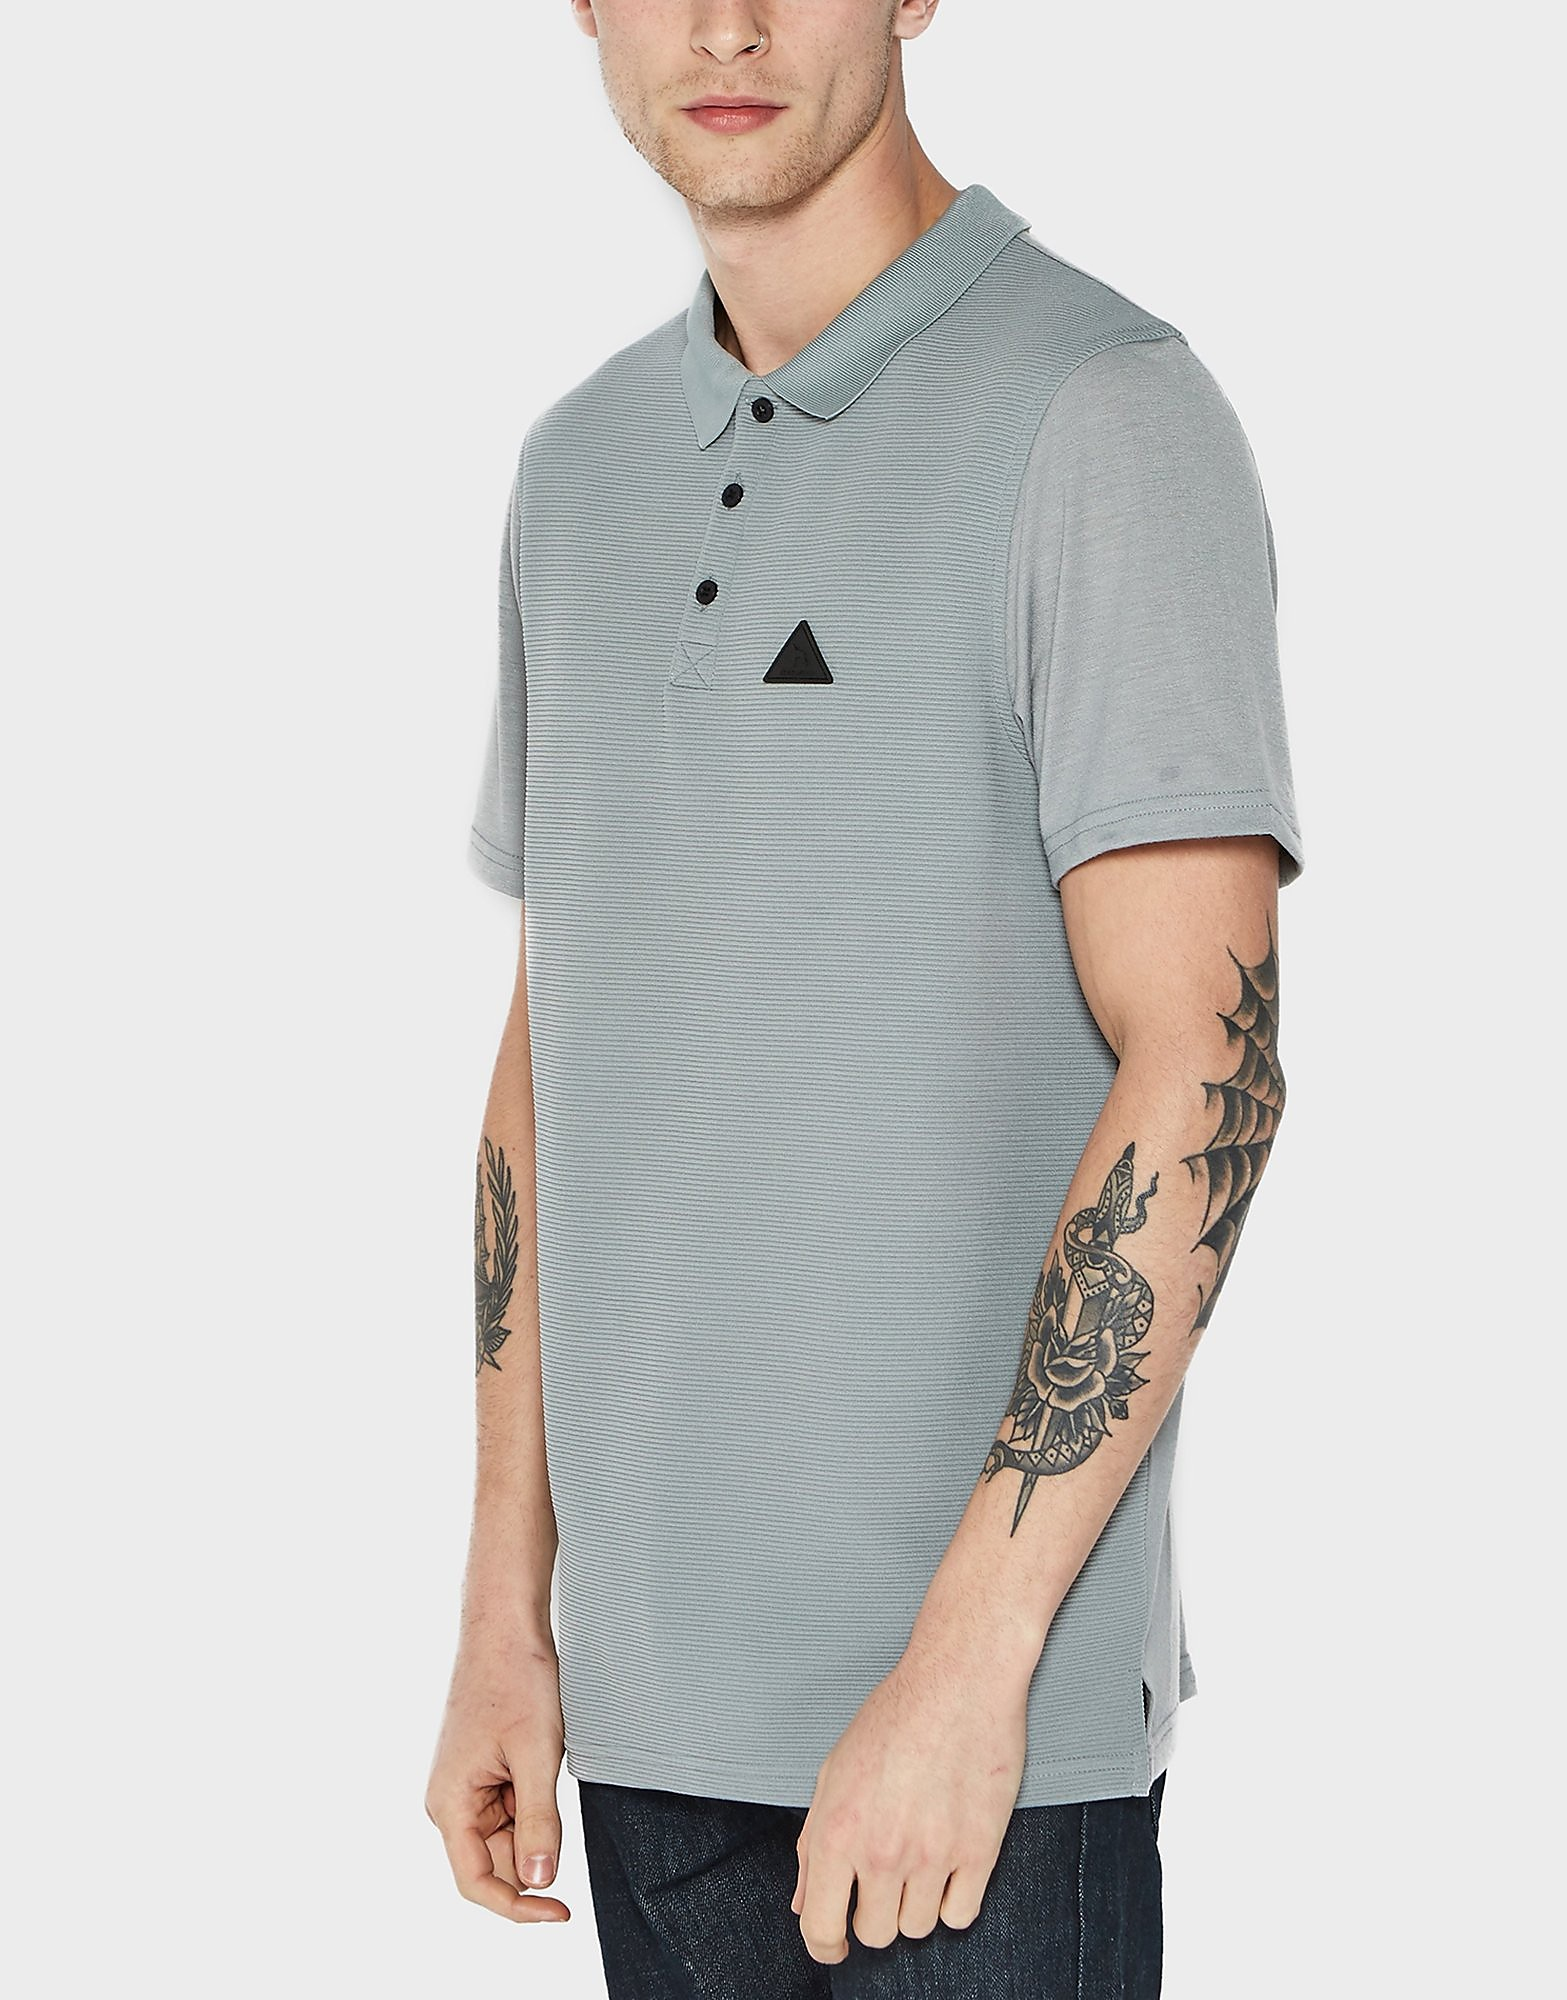 One True Saxon Access Short Sleeve Polo Shirt - Exclusive